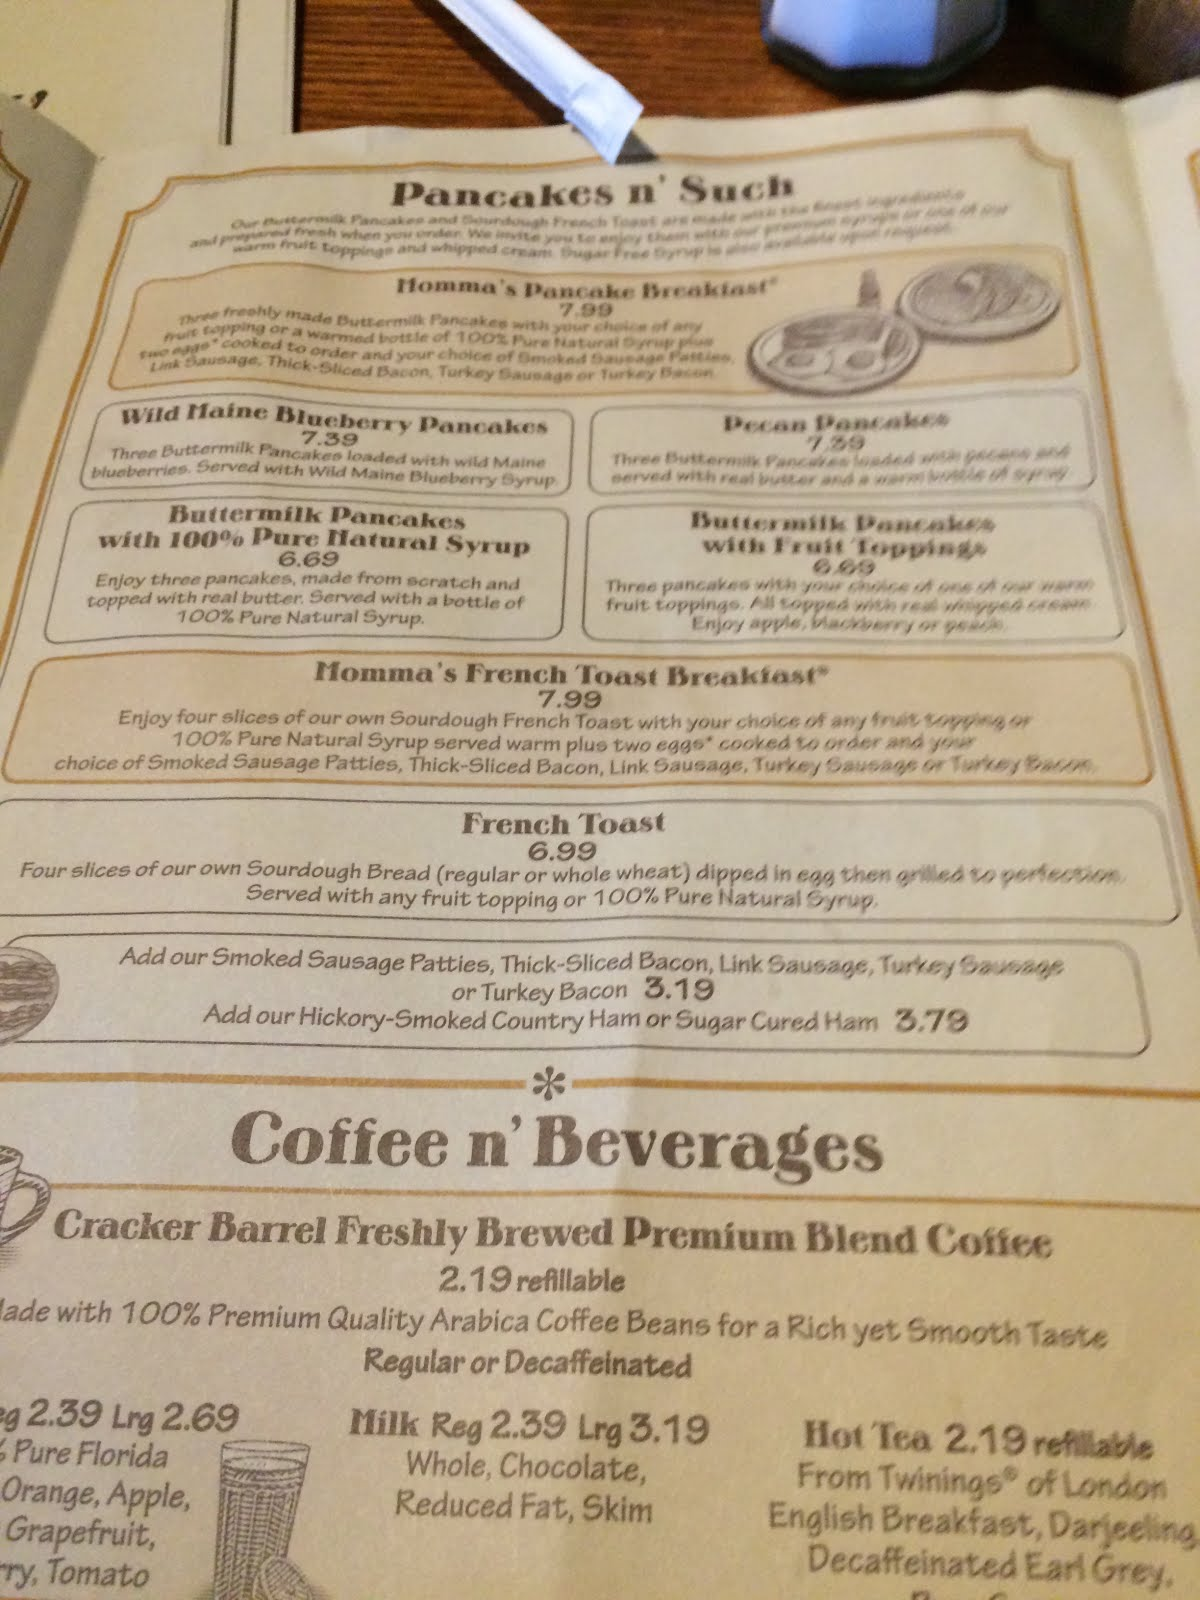 another look at the menu